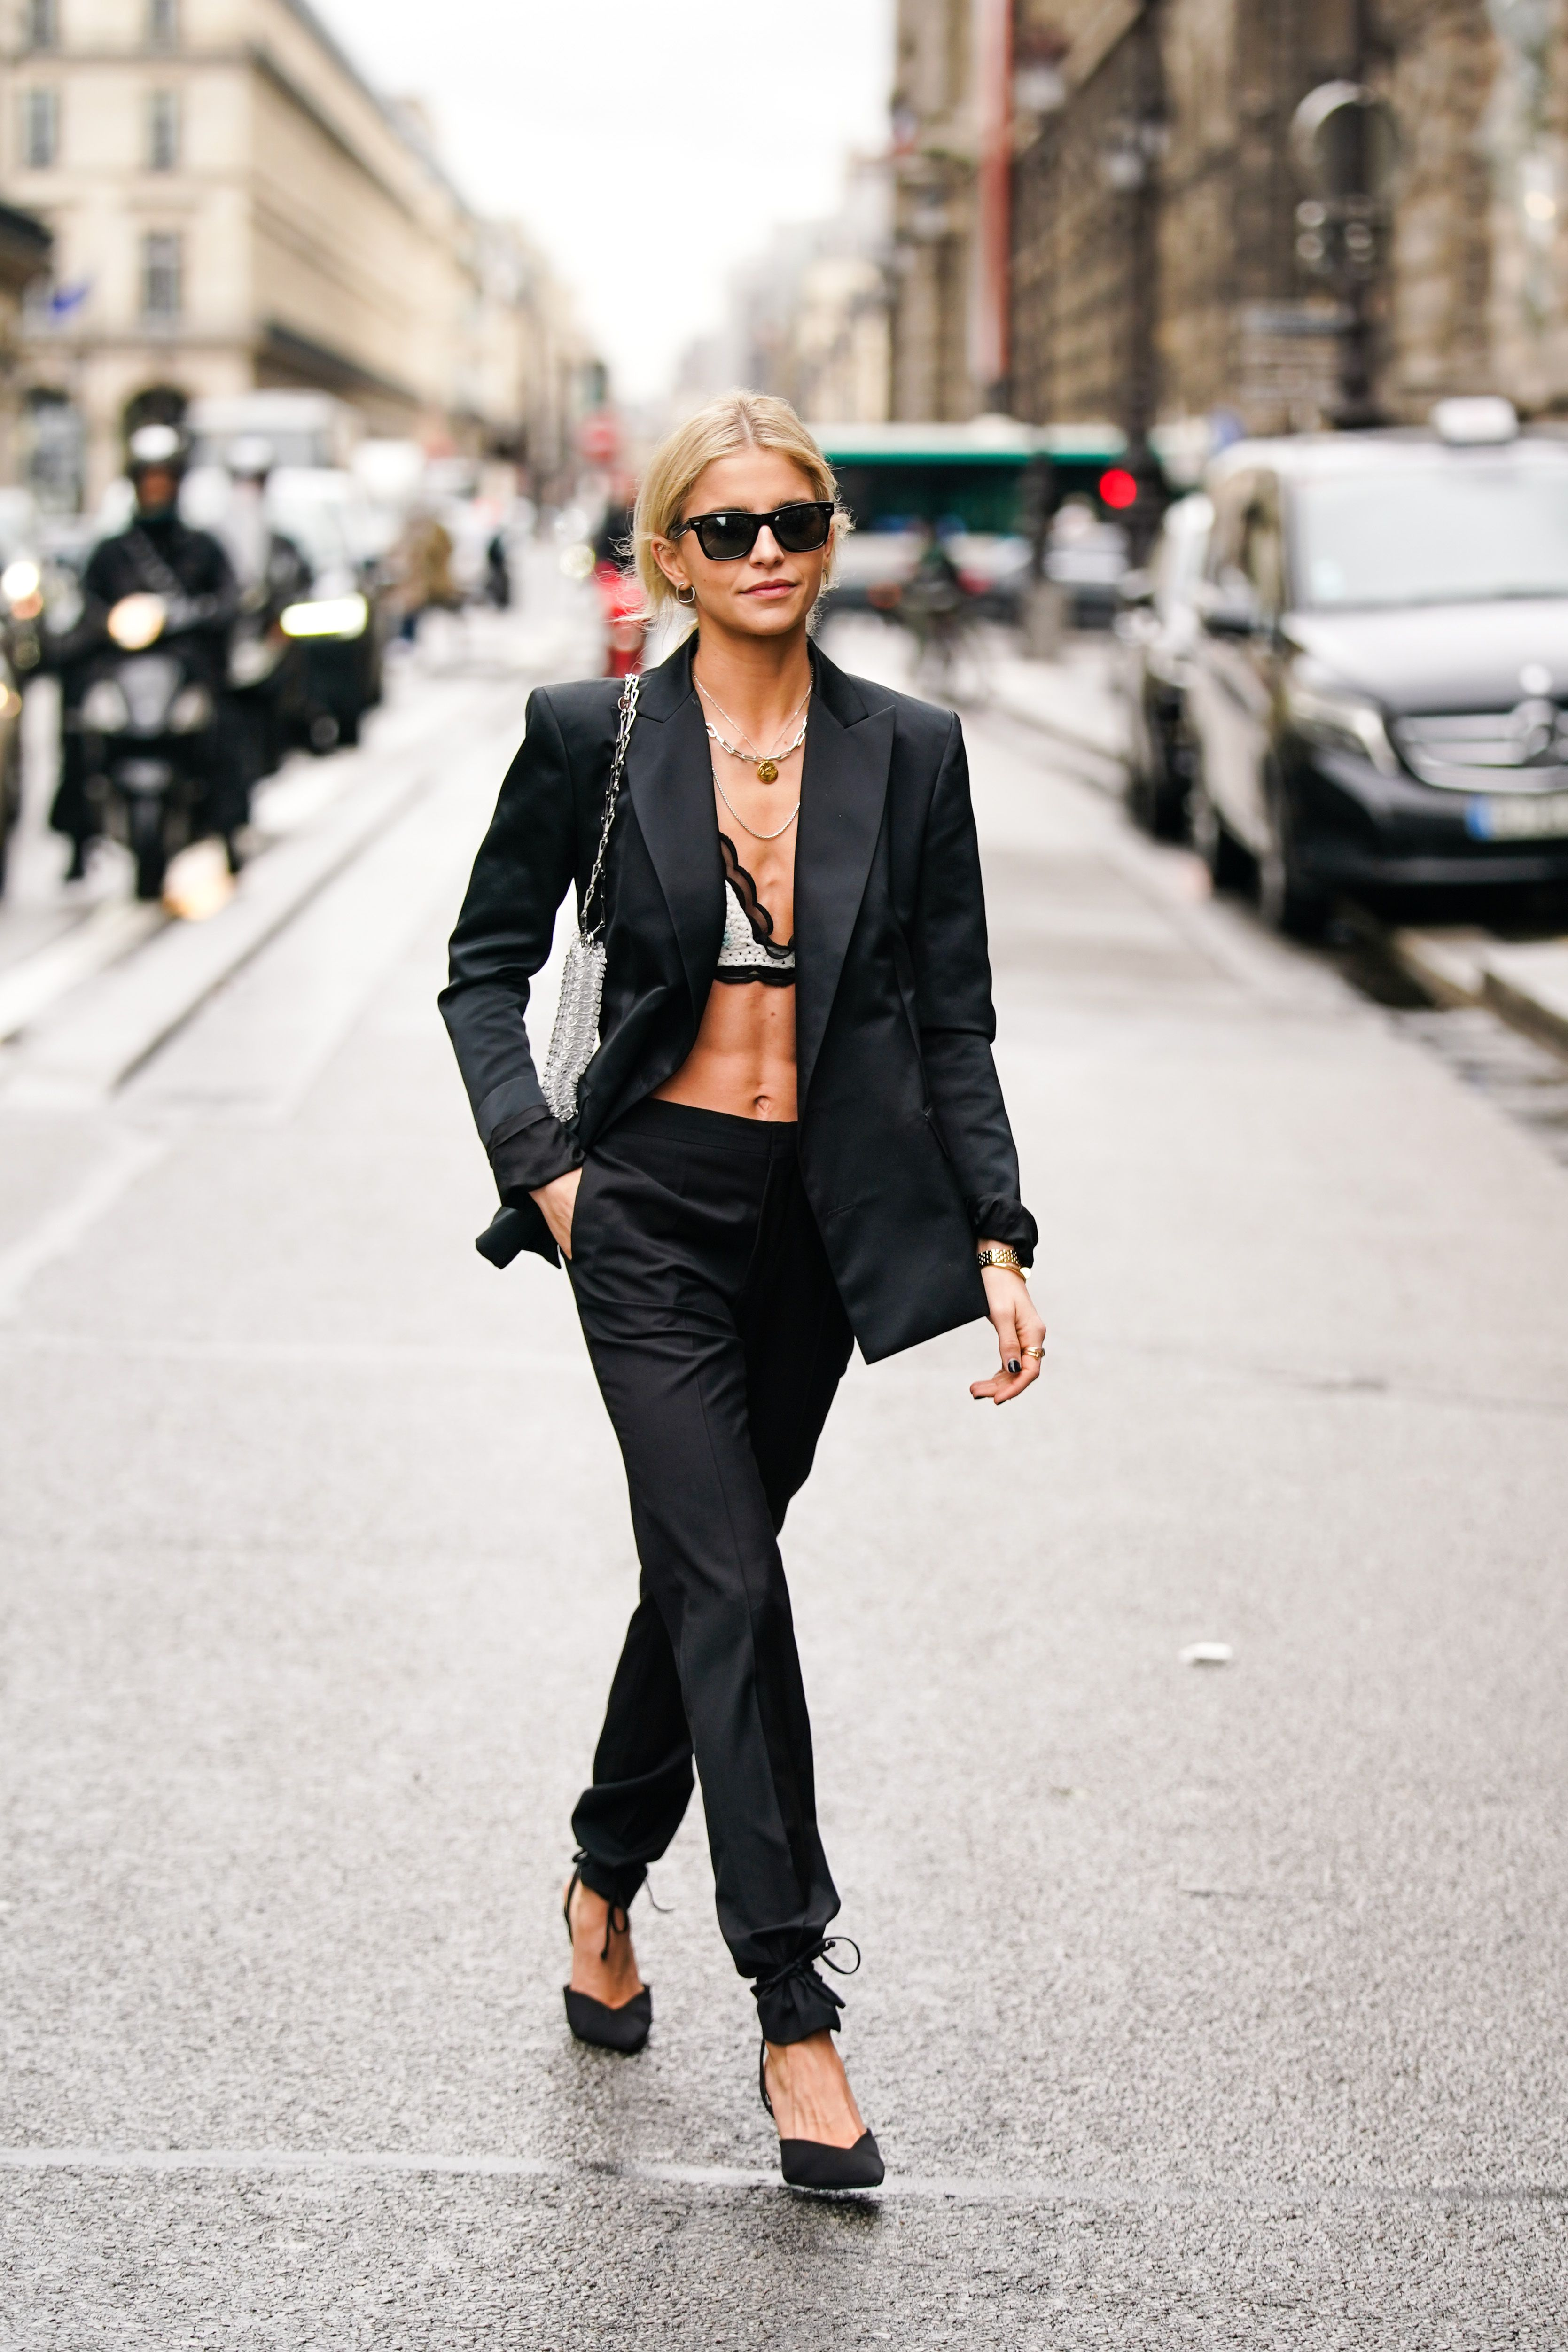 20 bralettes to wear when you're working from home